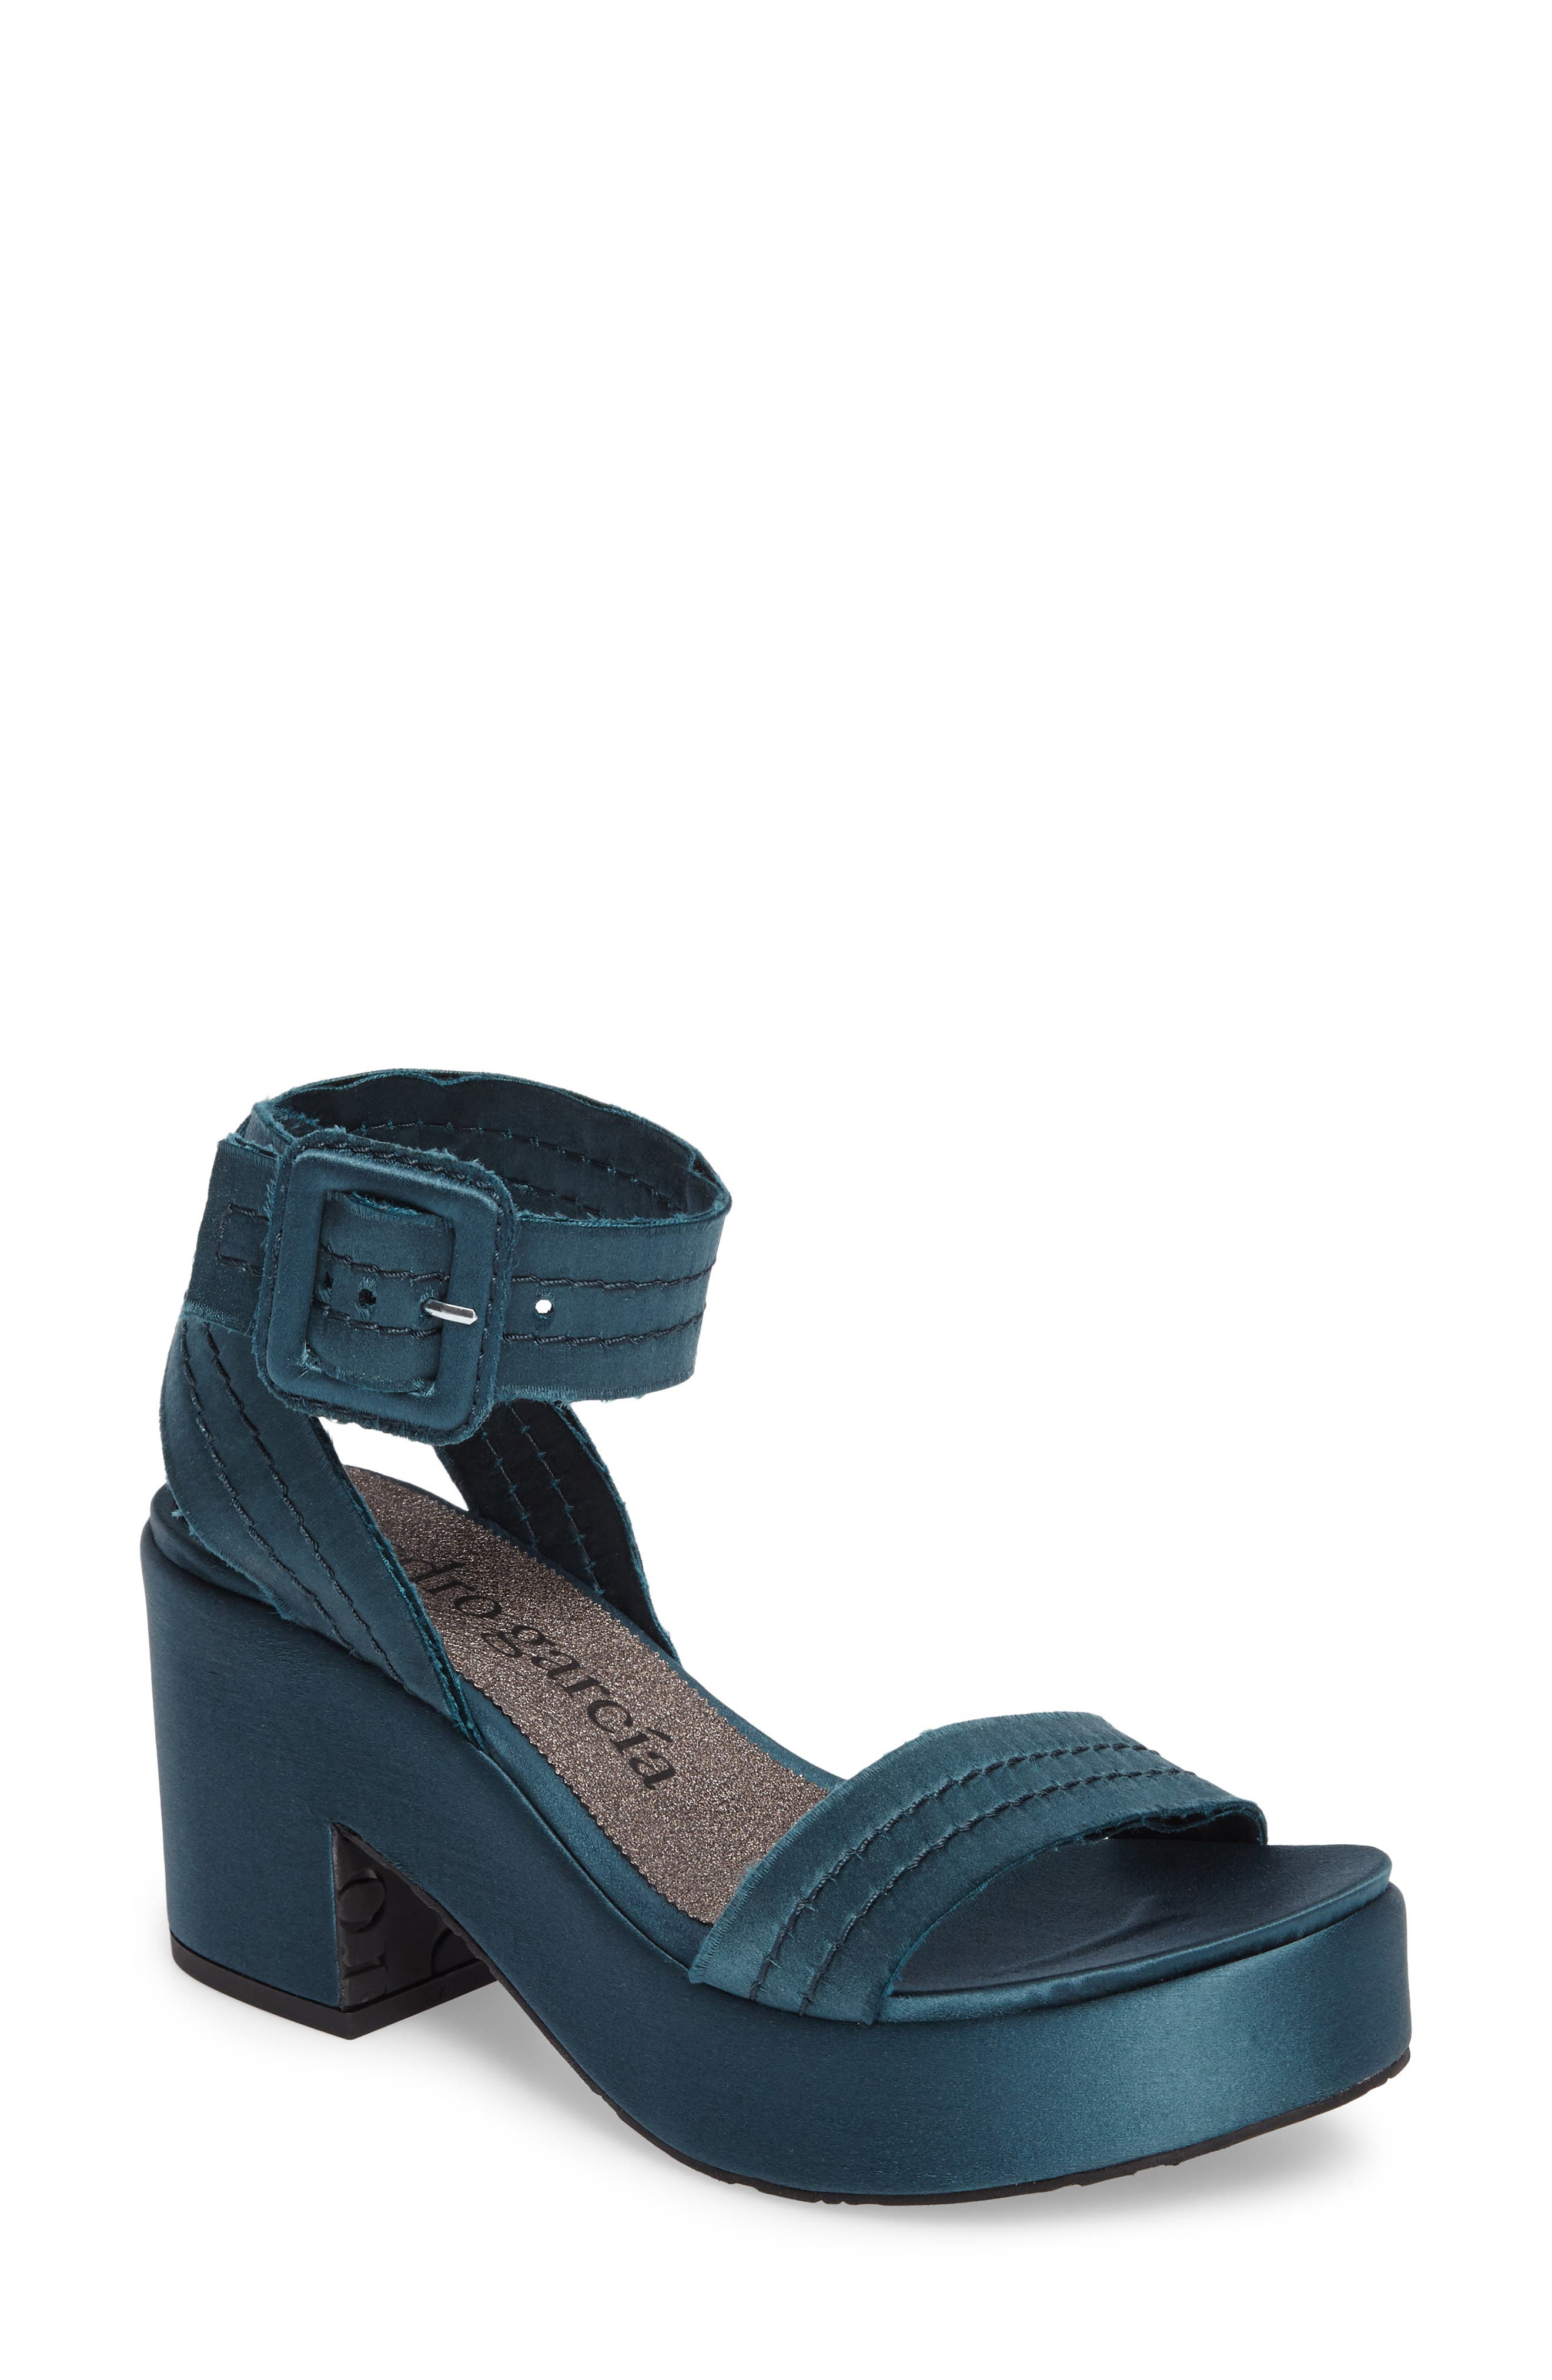 Alternate Image 1 Selected - Pedro Garcia Davida Platform Sandal (Women)